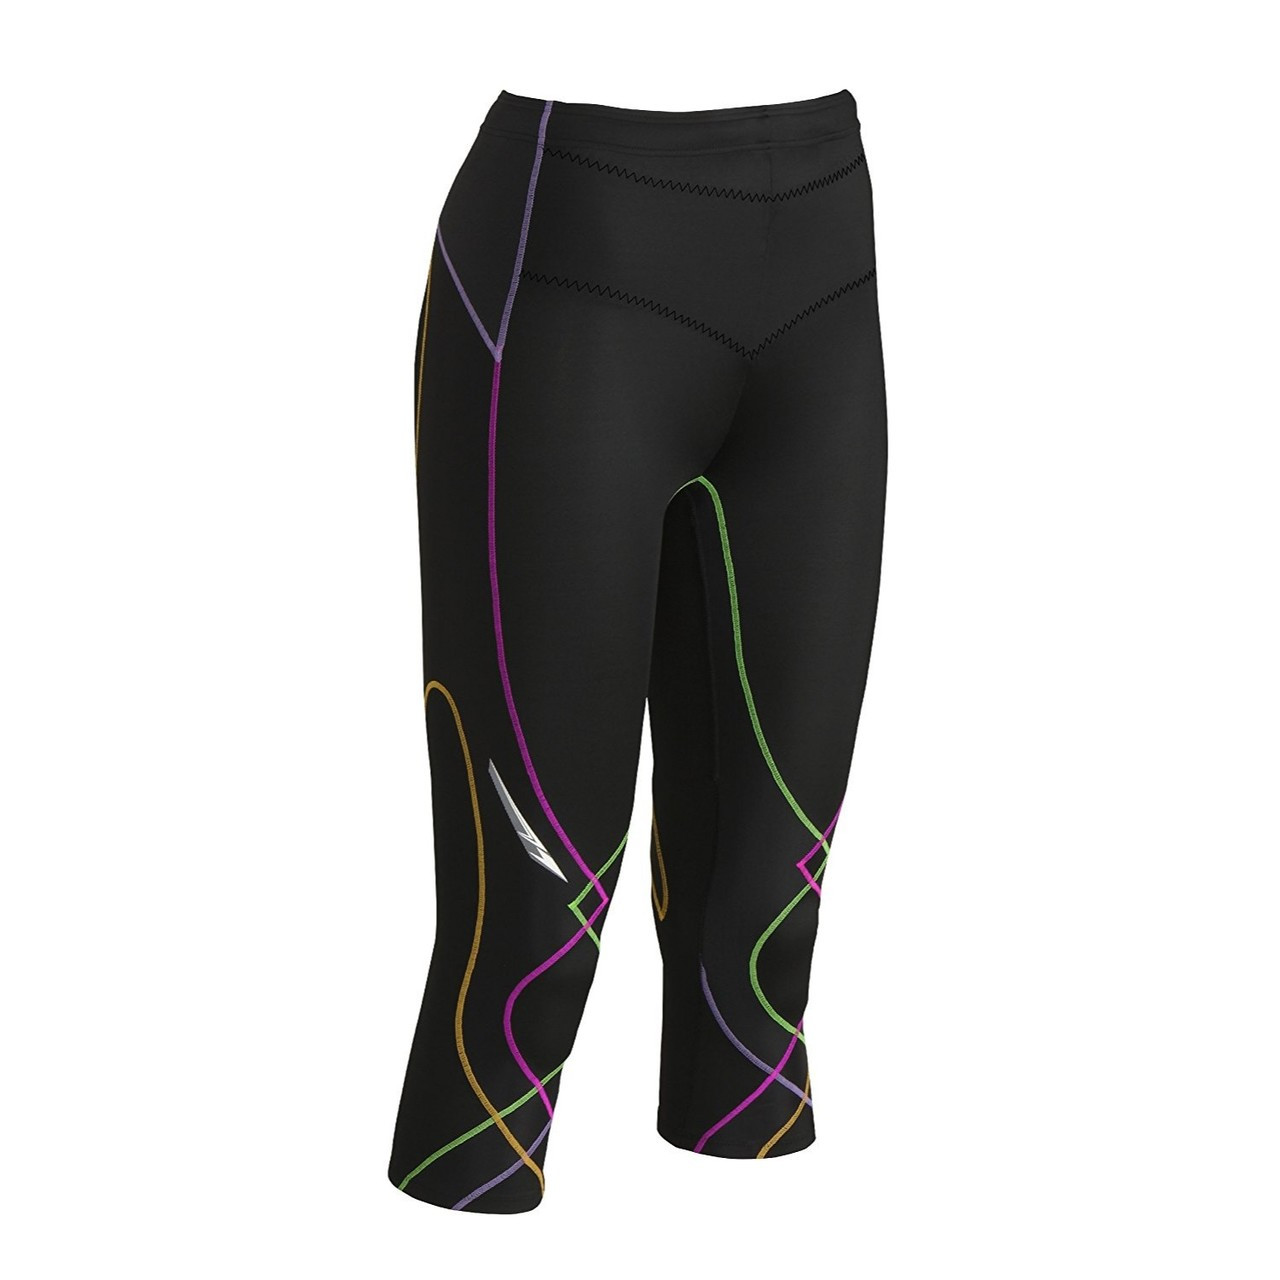 CW-X Women's 3/4 Length Stabilyx Tight - 2019 price